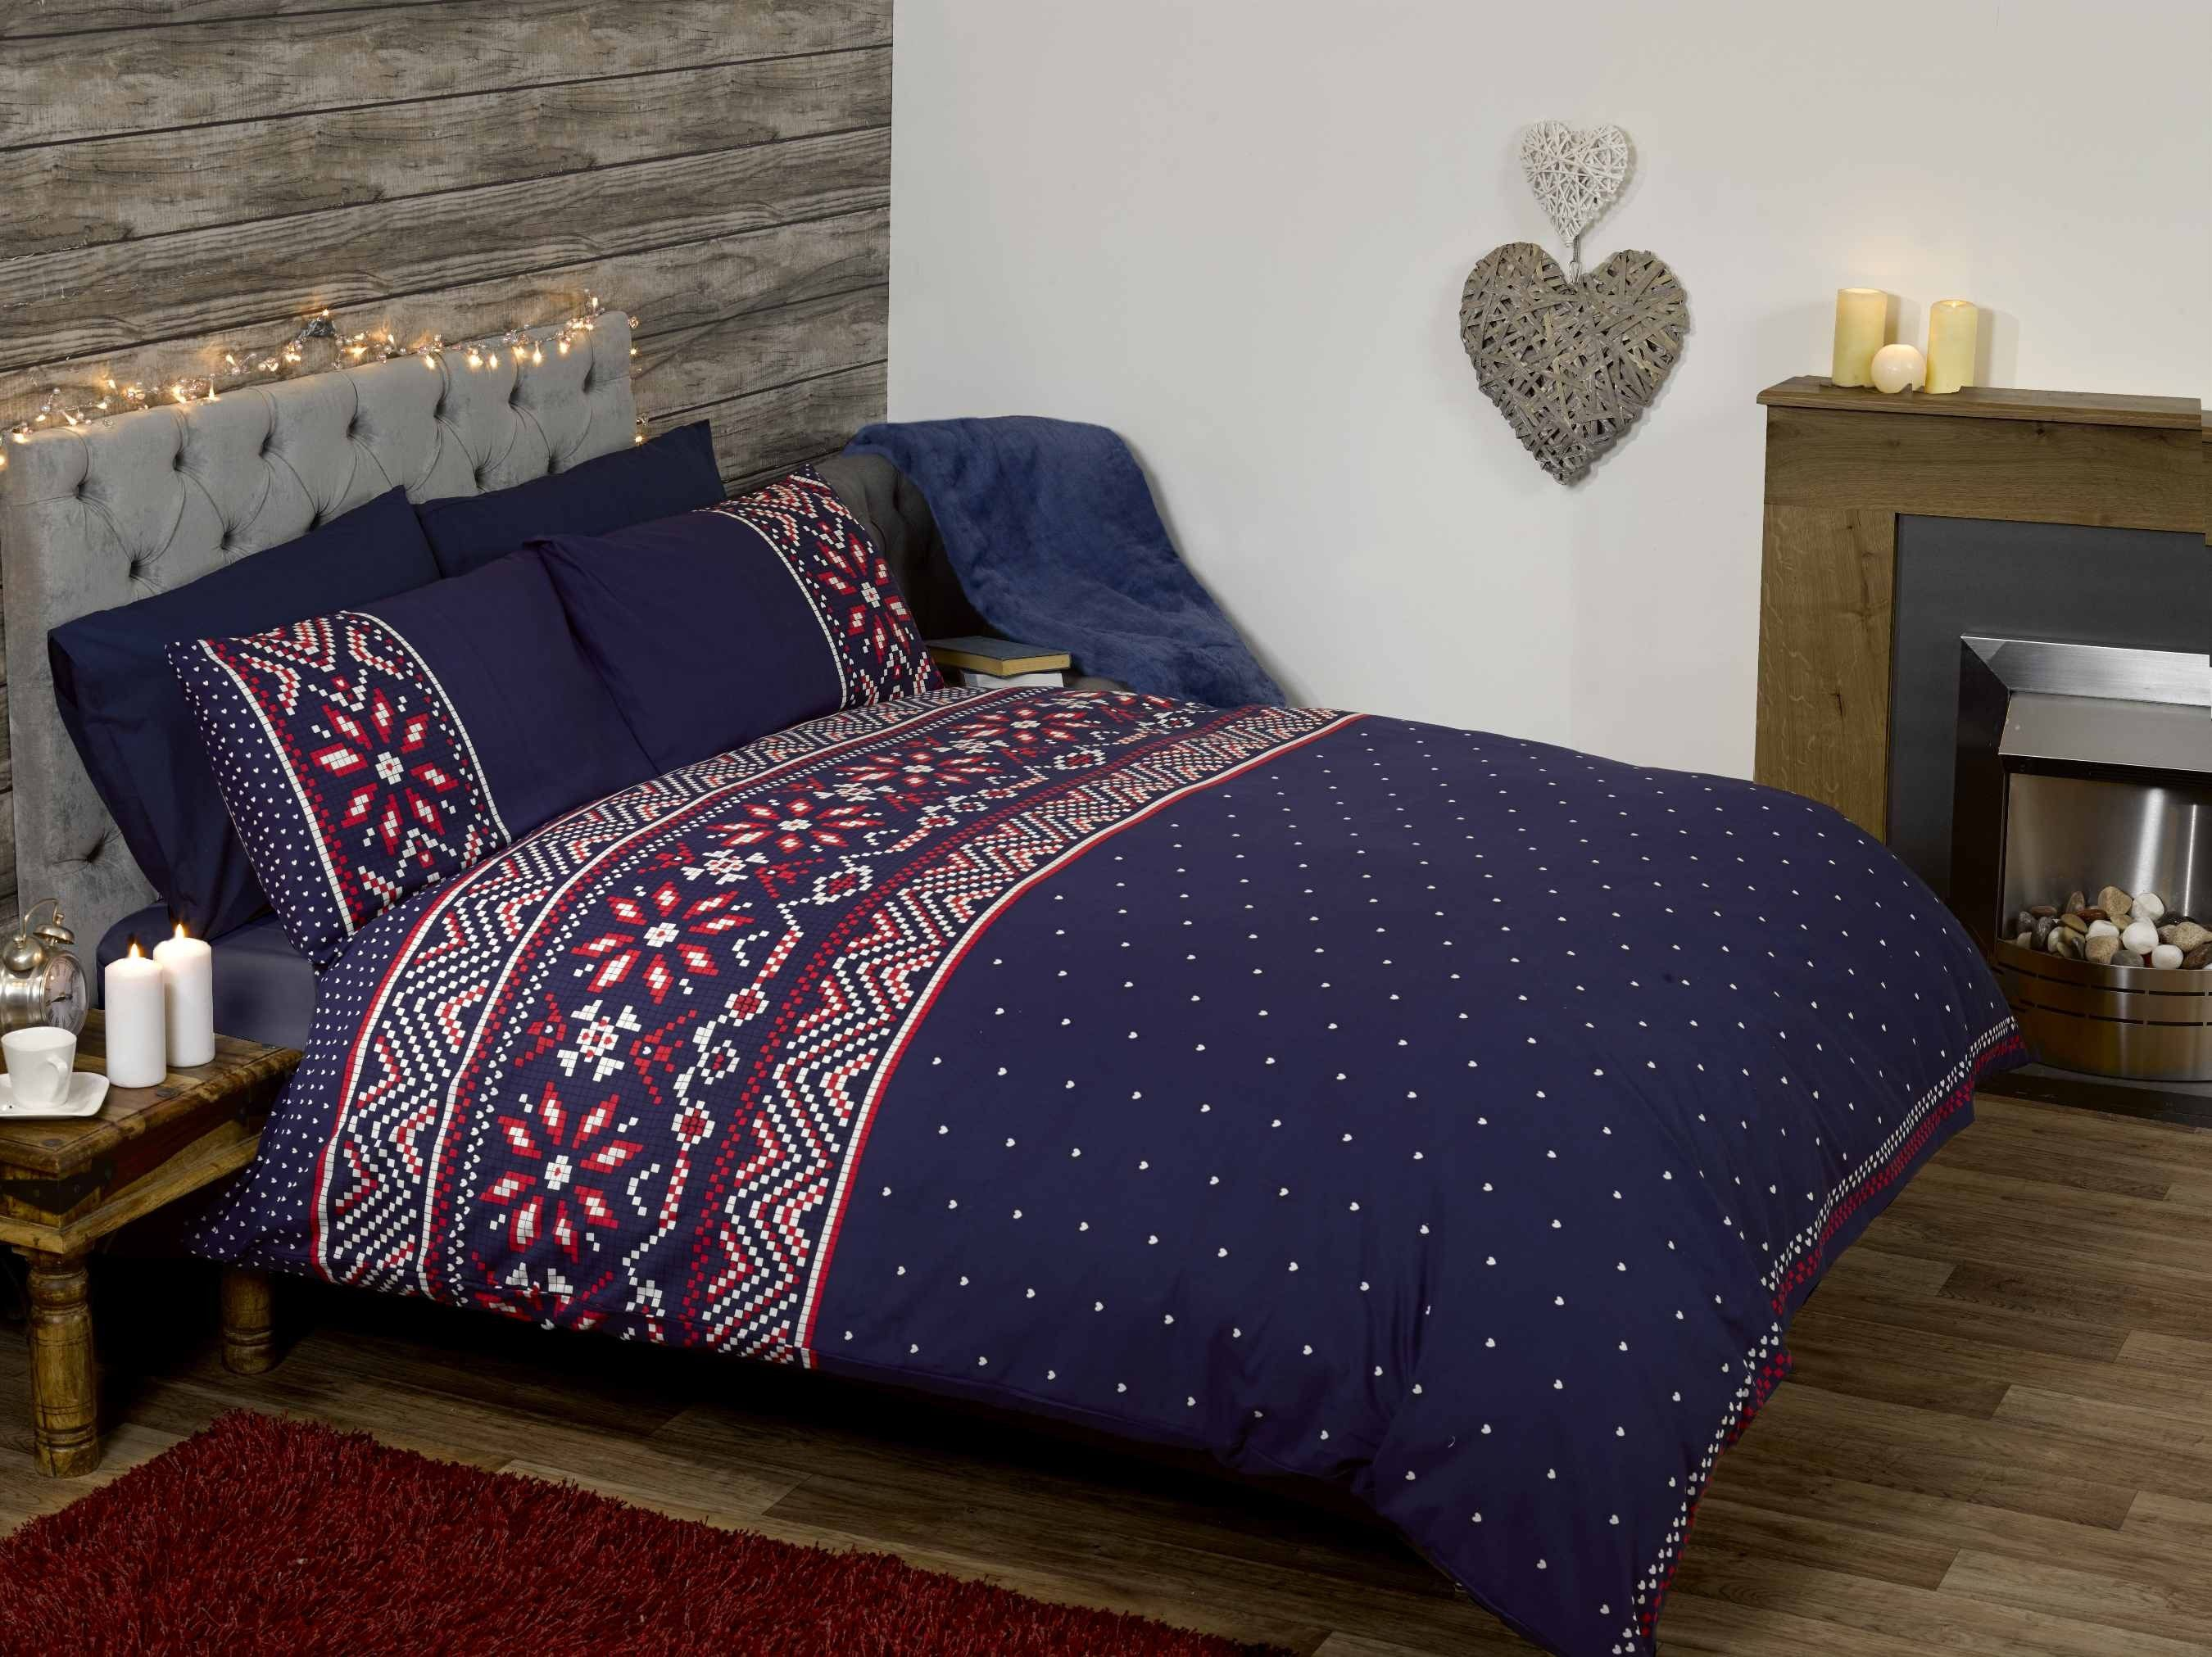 best bedding images on pinterest  bedroom ideas  beds and  - nordic snowflake  duvet cover